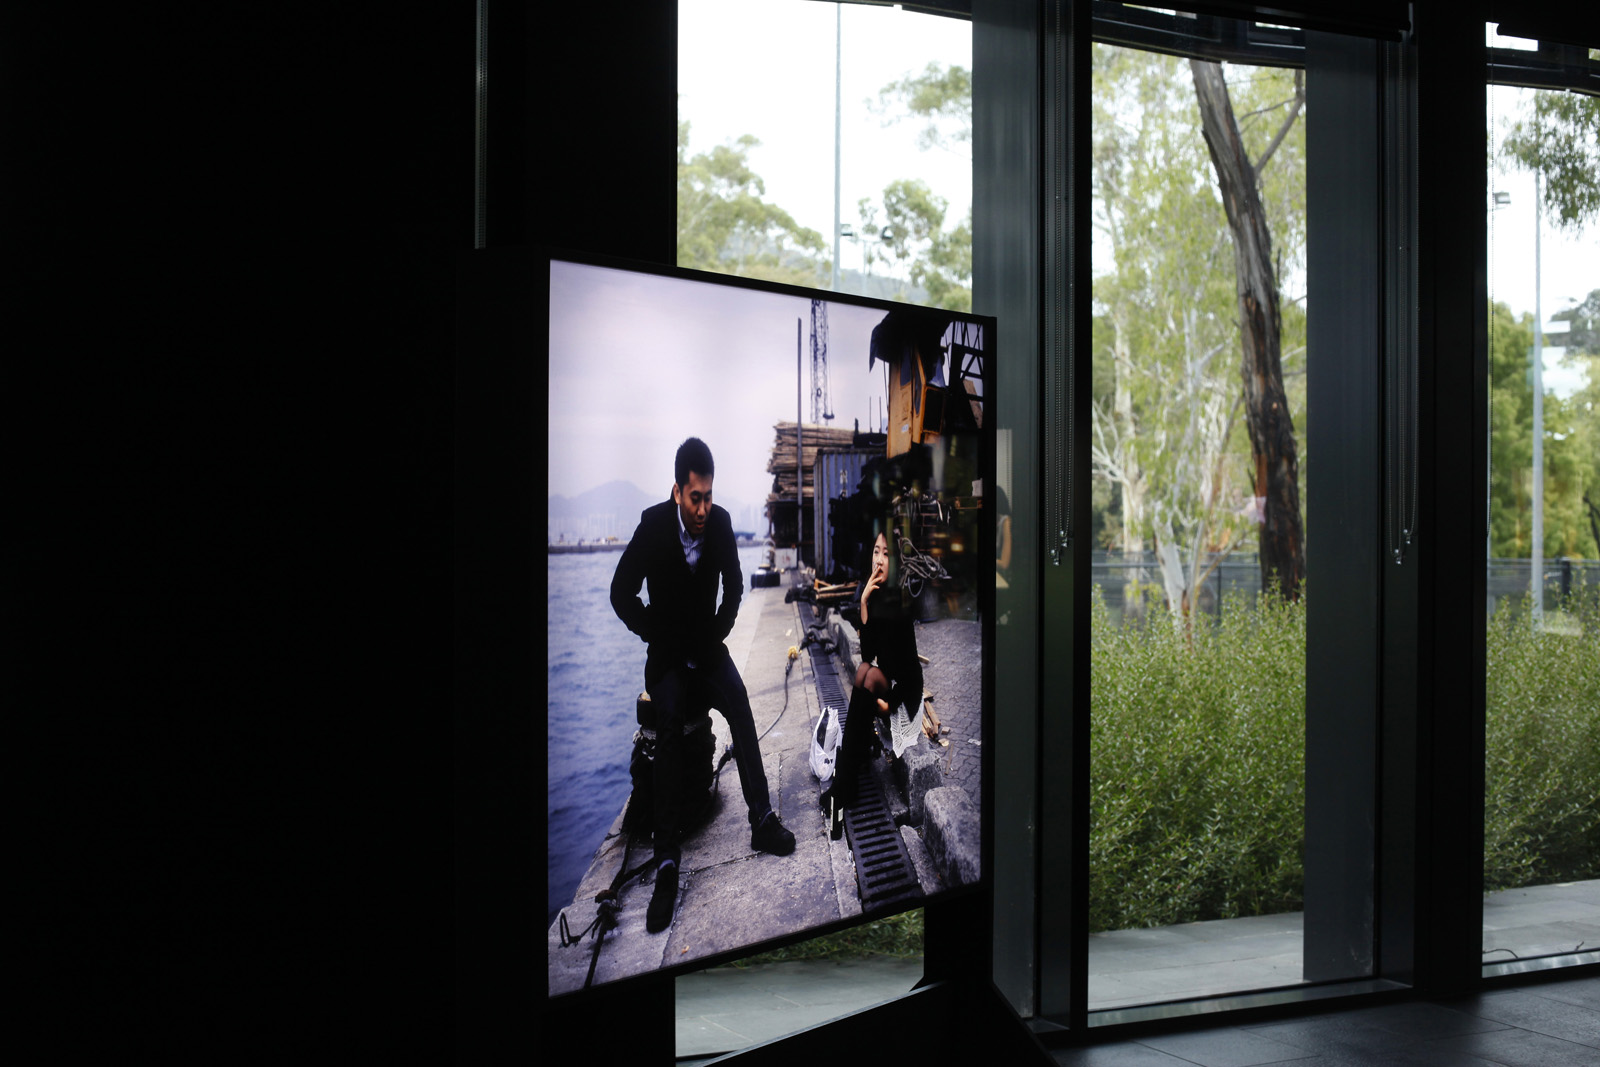 Installation view of solo exhibition at the Australian National University CIW Gallery in Australia. Exhibition runs from March 31 to July 15 2016.